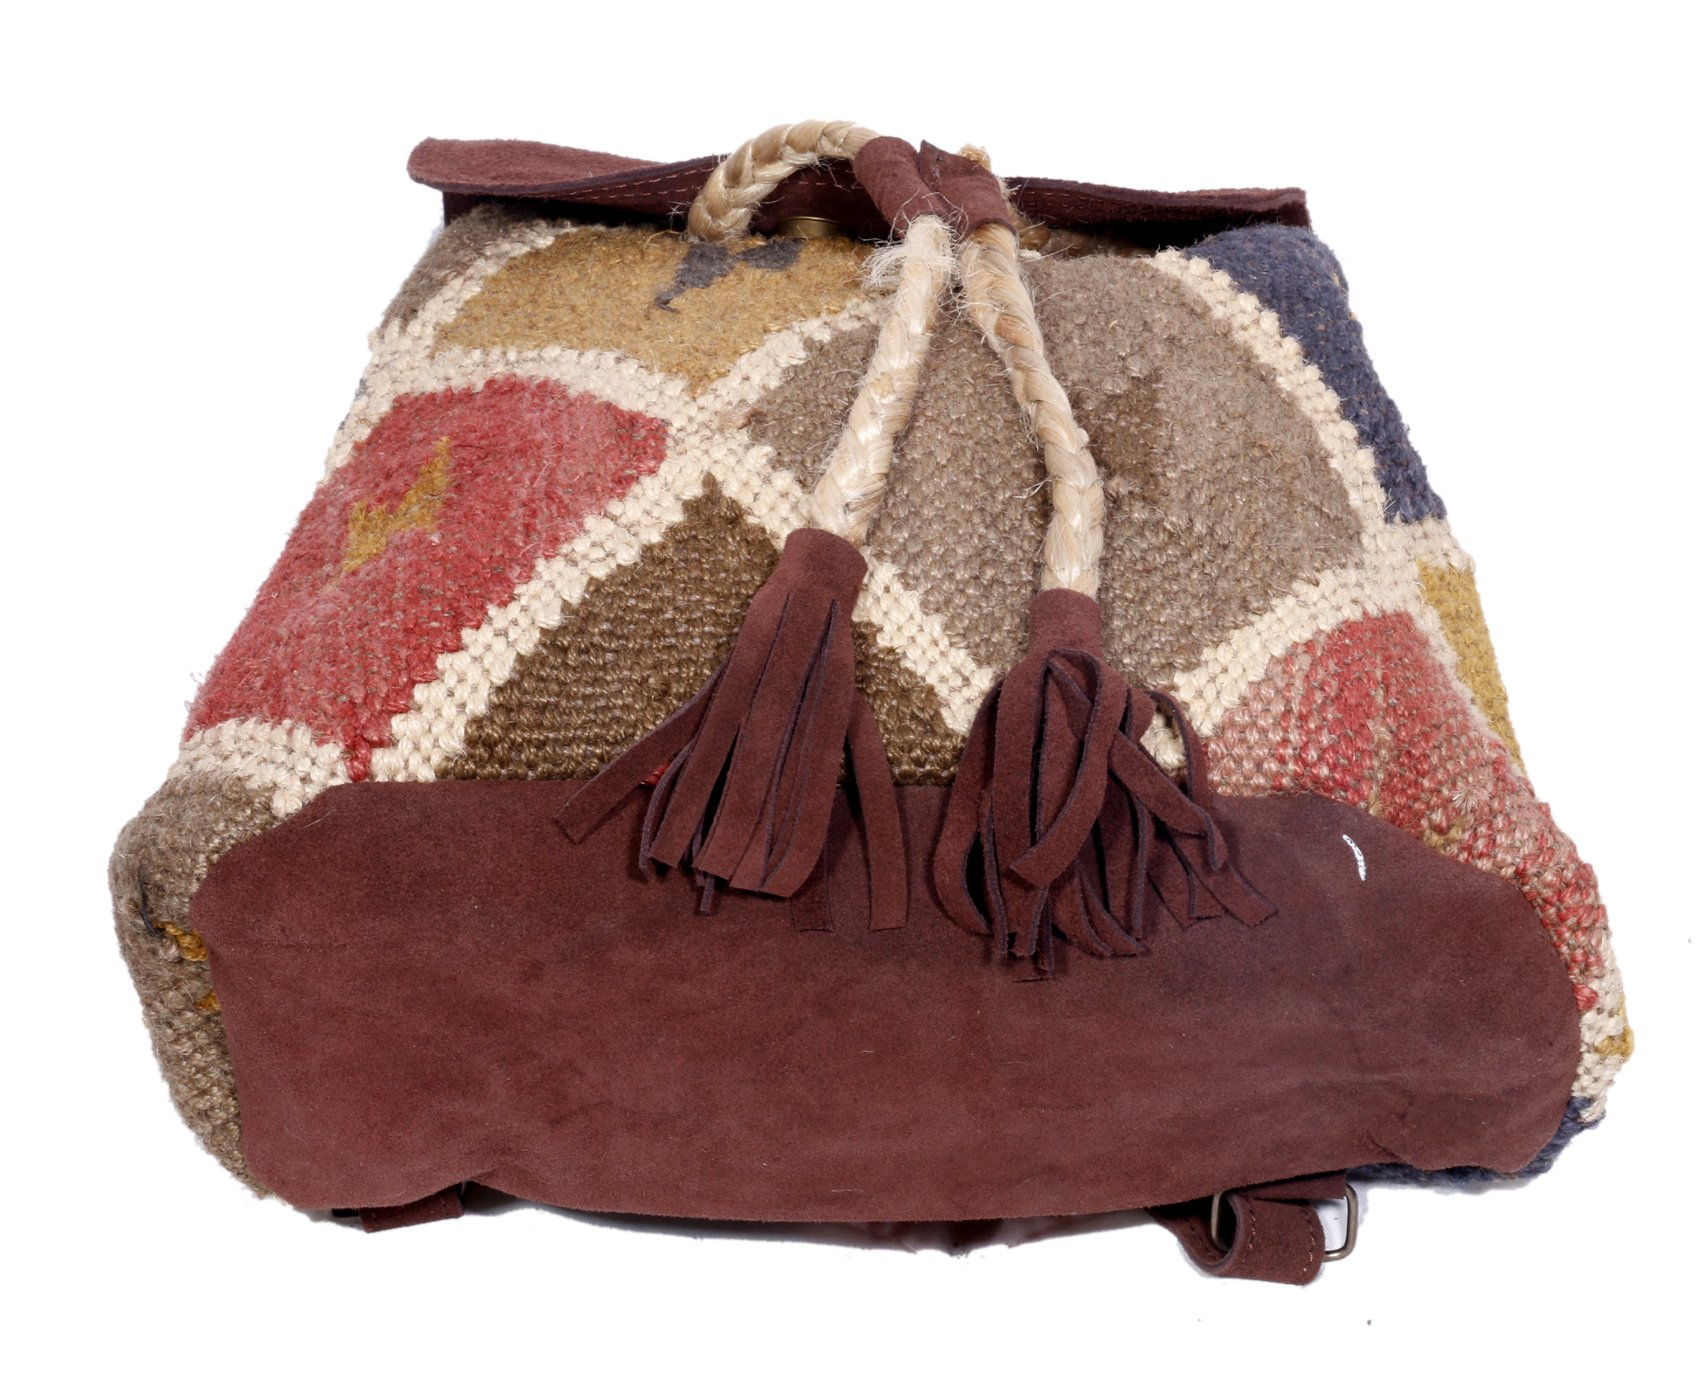 Indistar Women's Vintage Handmade Ethnic Kilim and Leather Back Pack Bag by Indistar (Image #7)